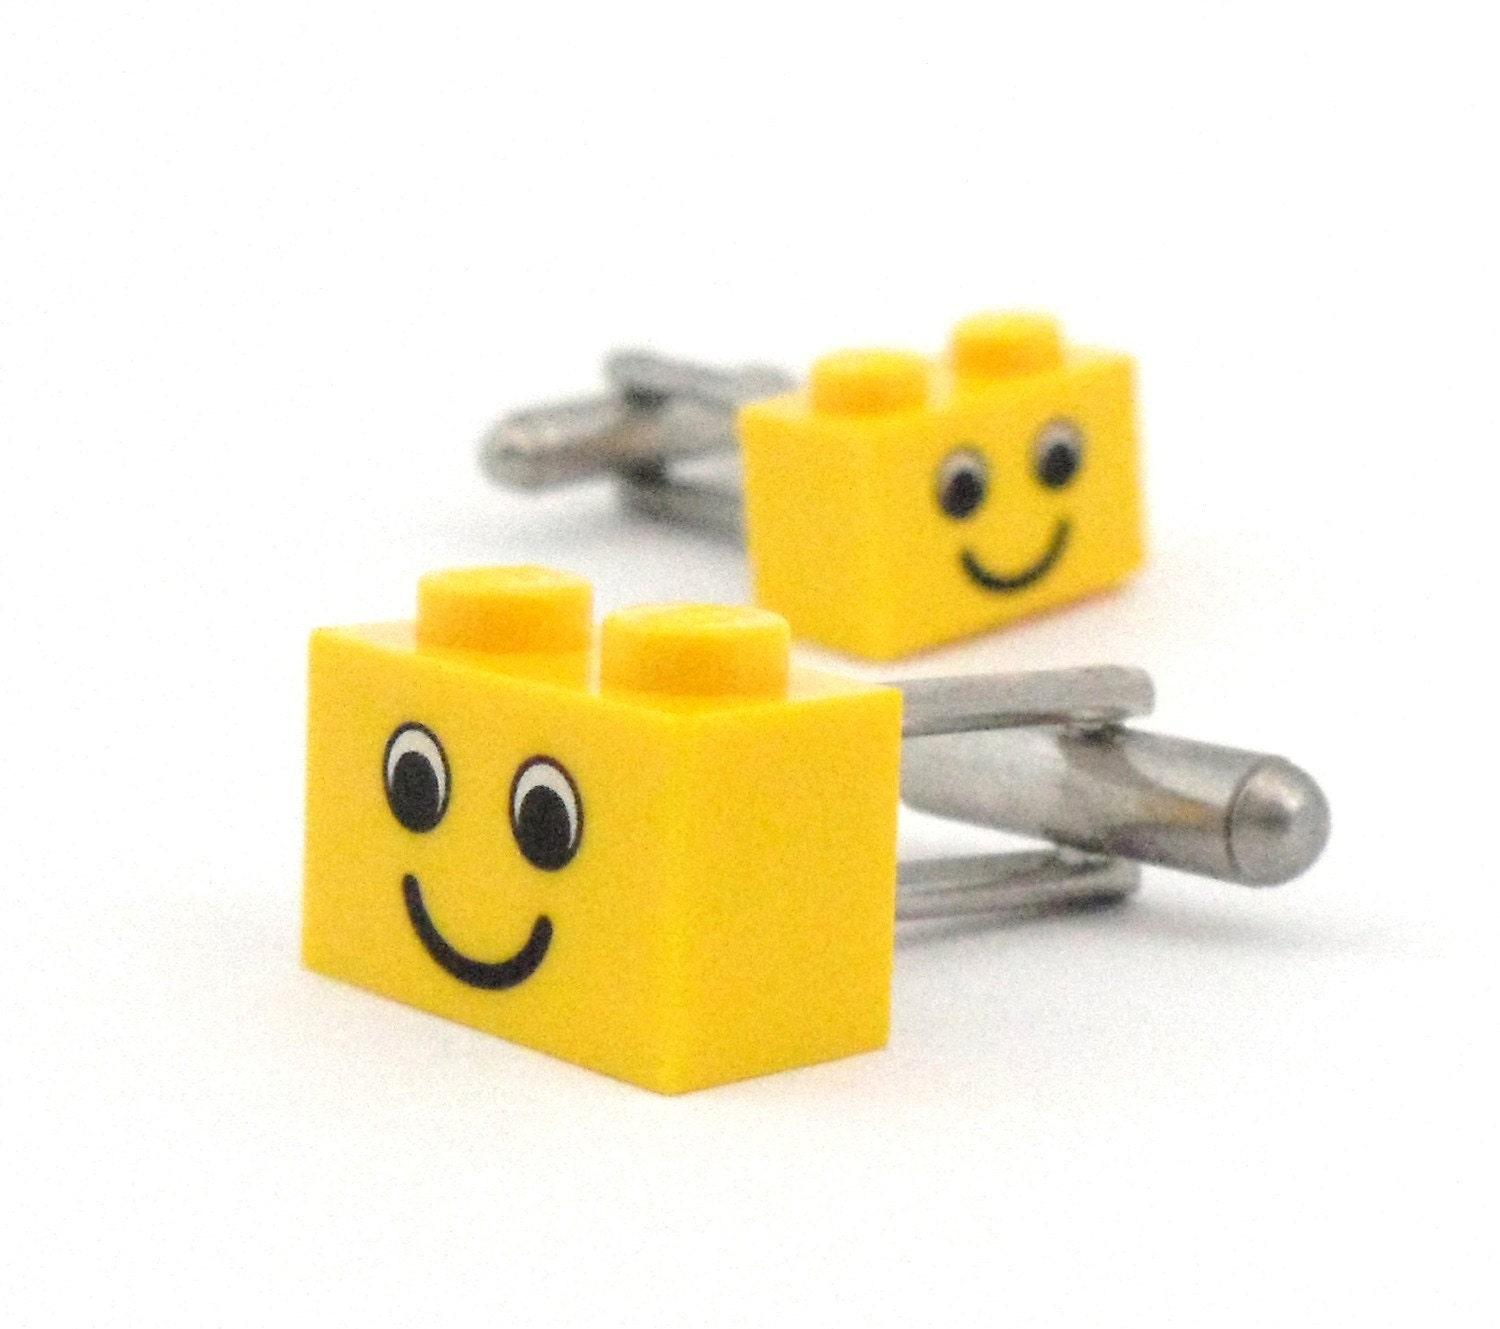 LEGO Smiley Head Brick Cufflinks